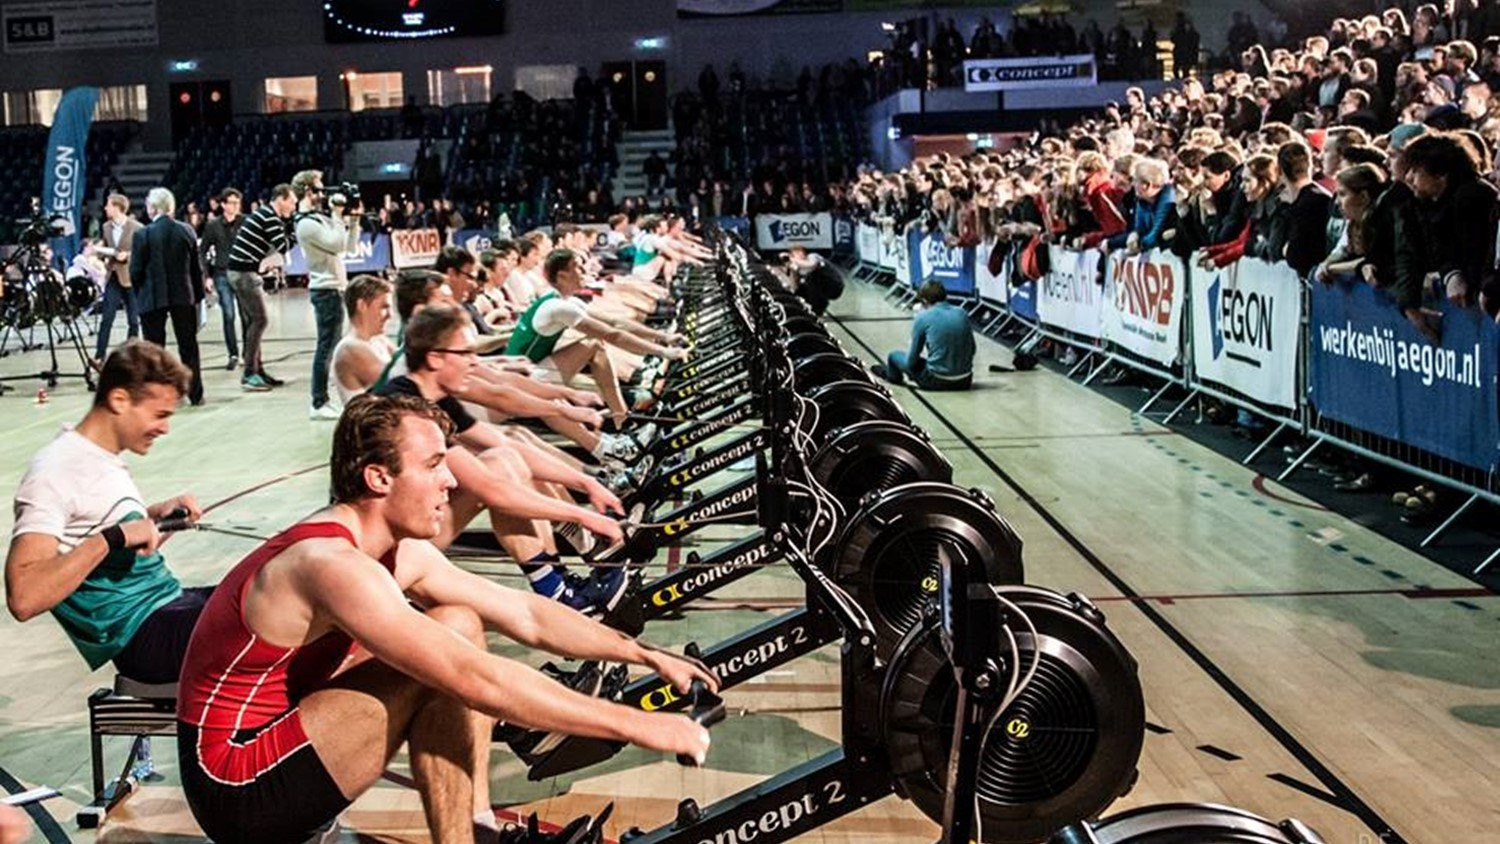 World Rowing claim the indoor discipline is growing worldwide ©World Rowing